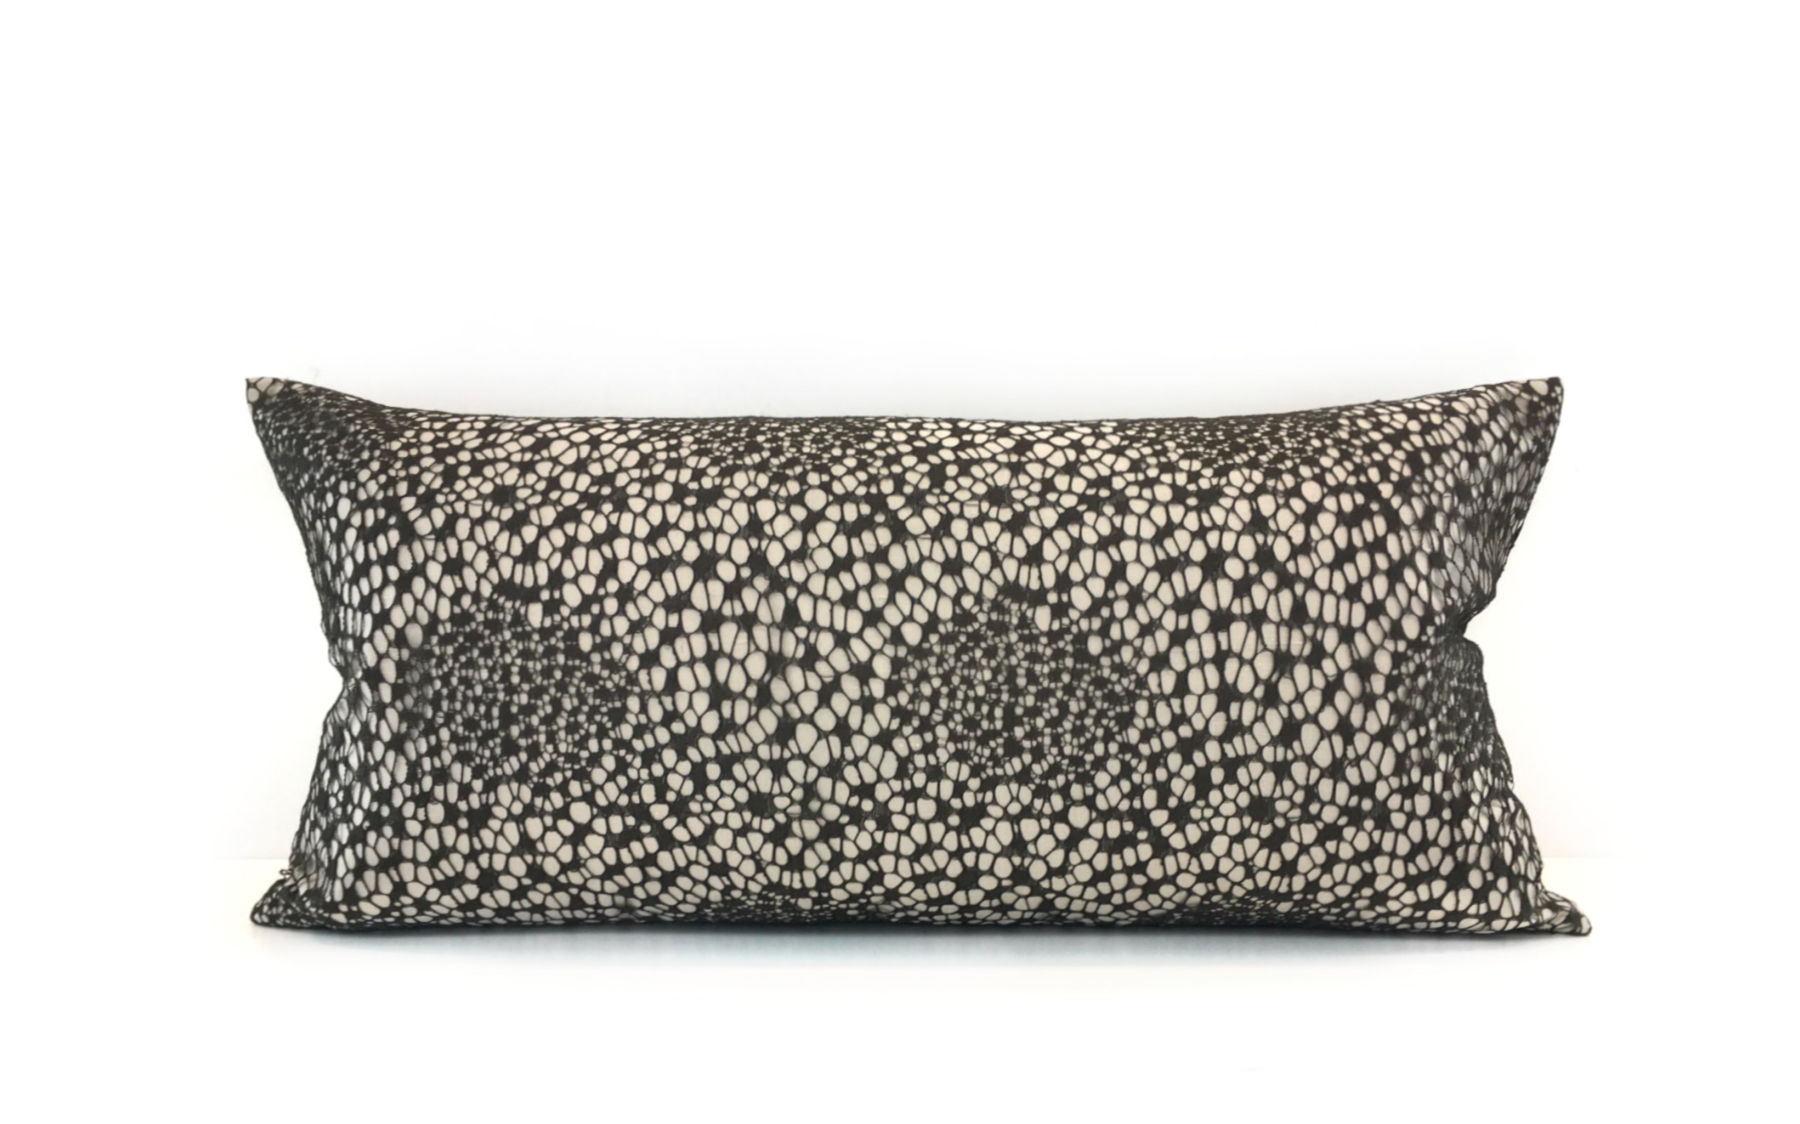 Cushion | Urban Lace